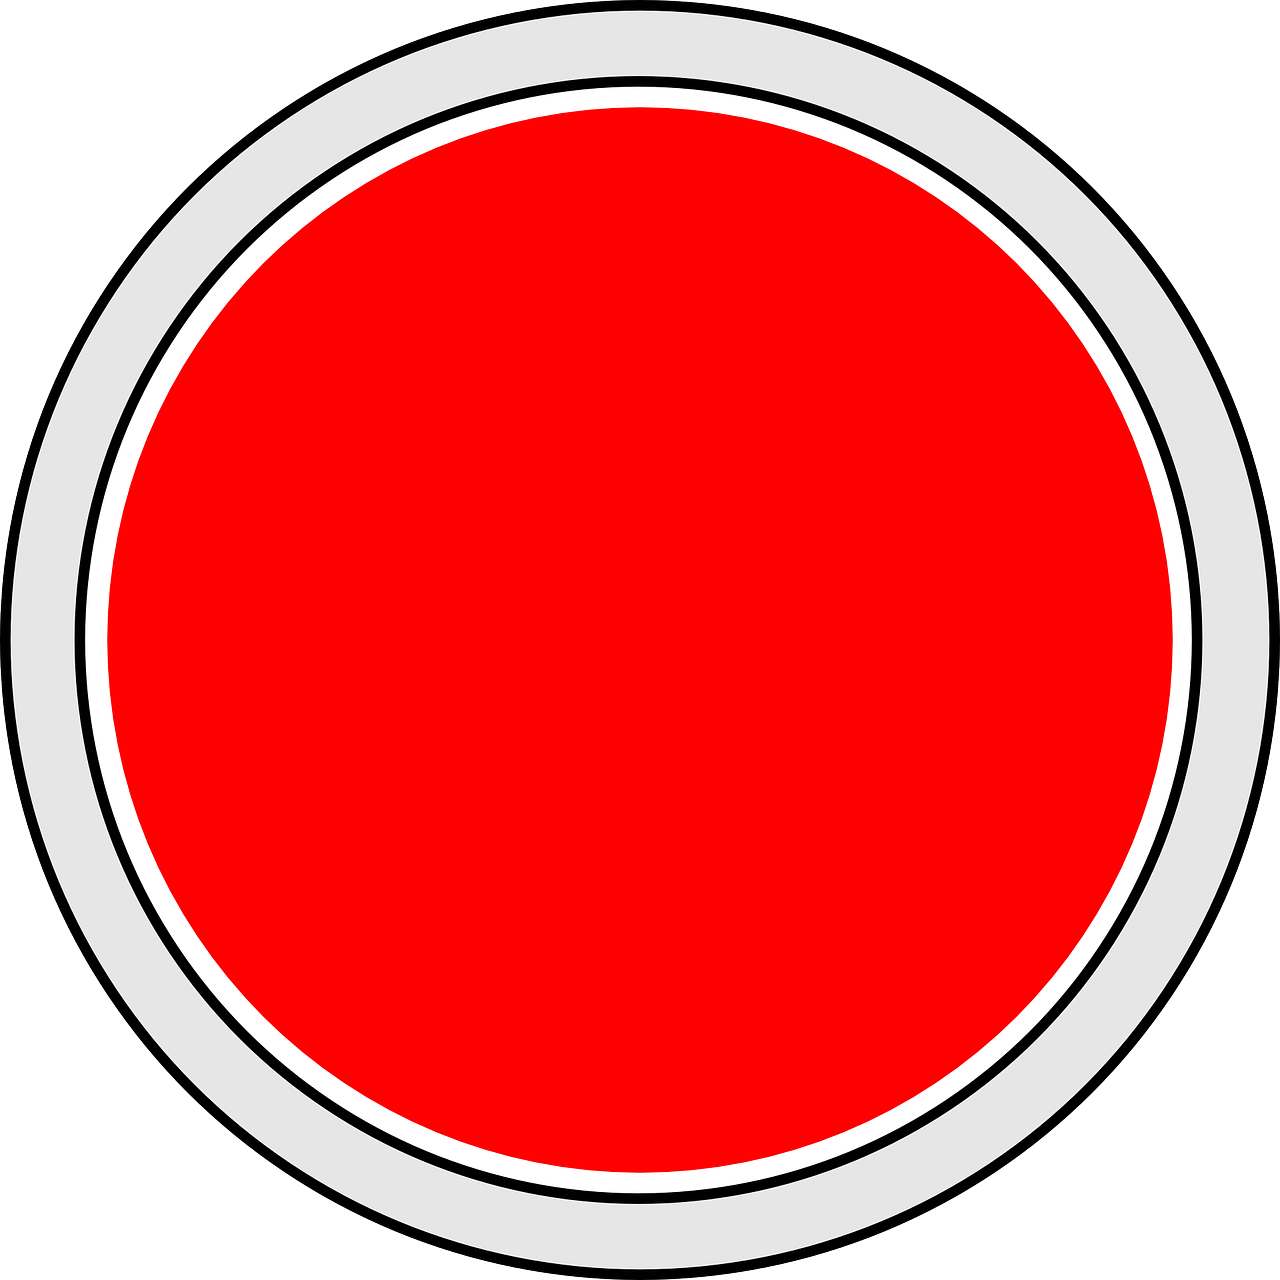 red button circle free photo